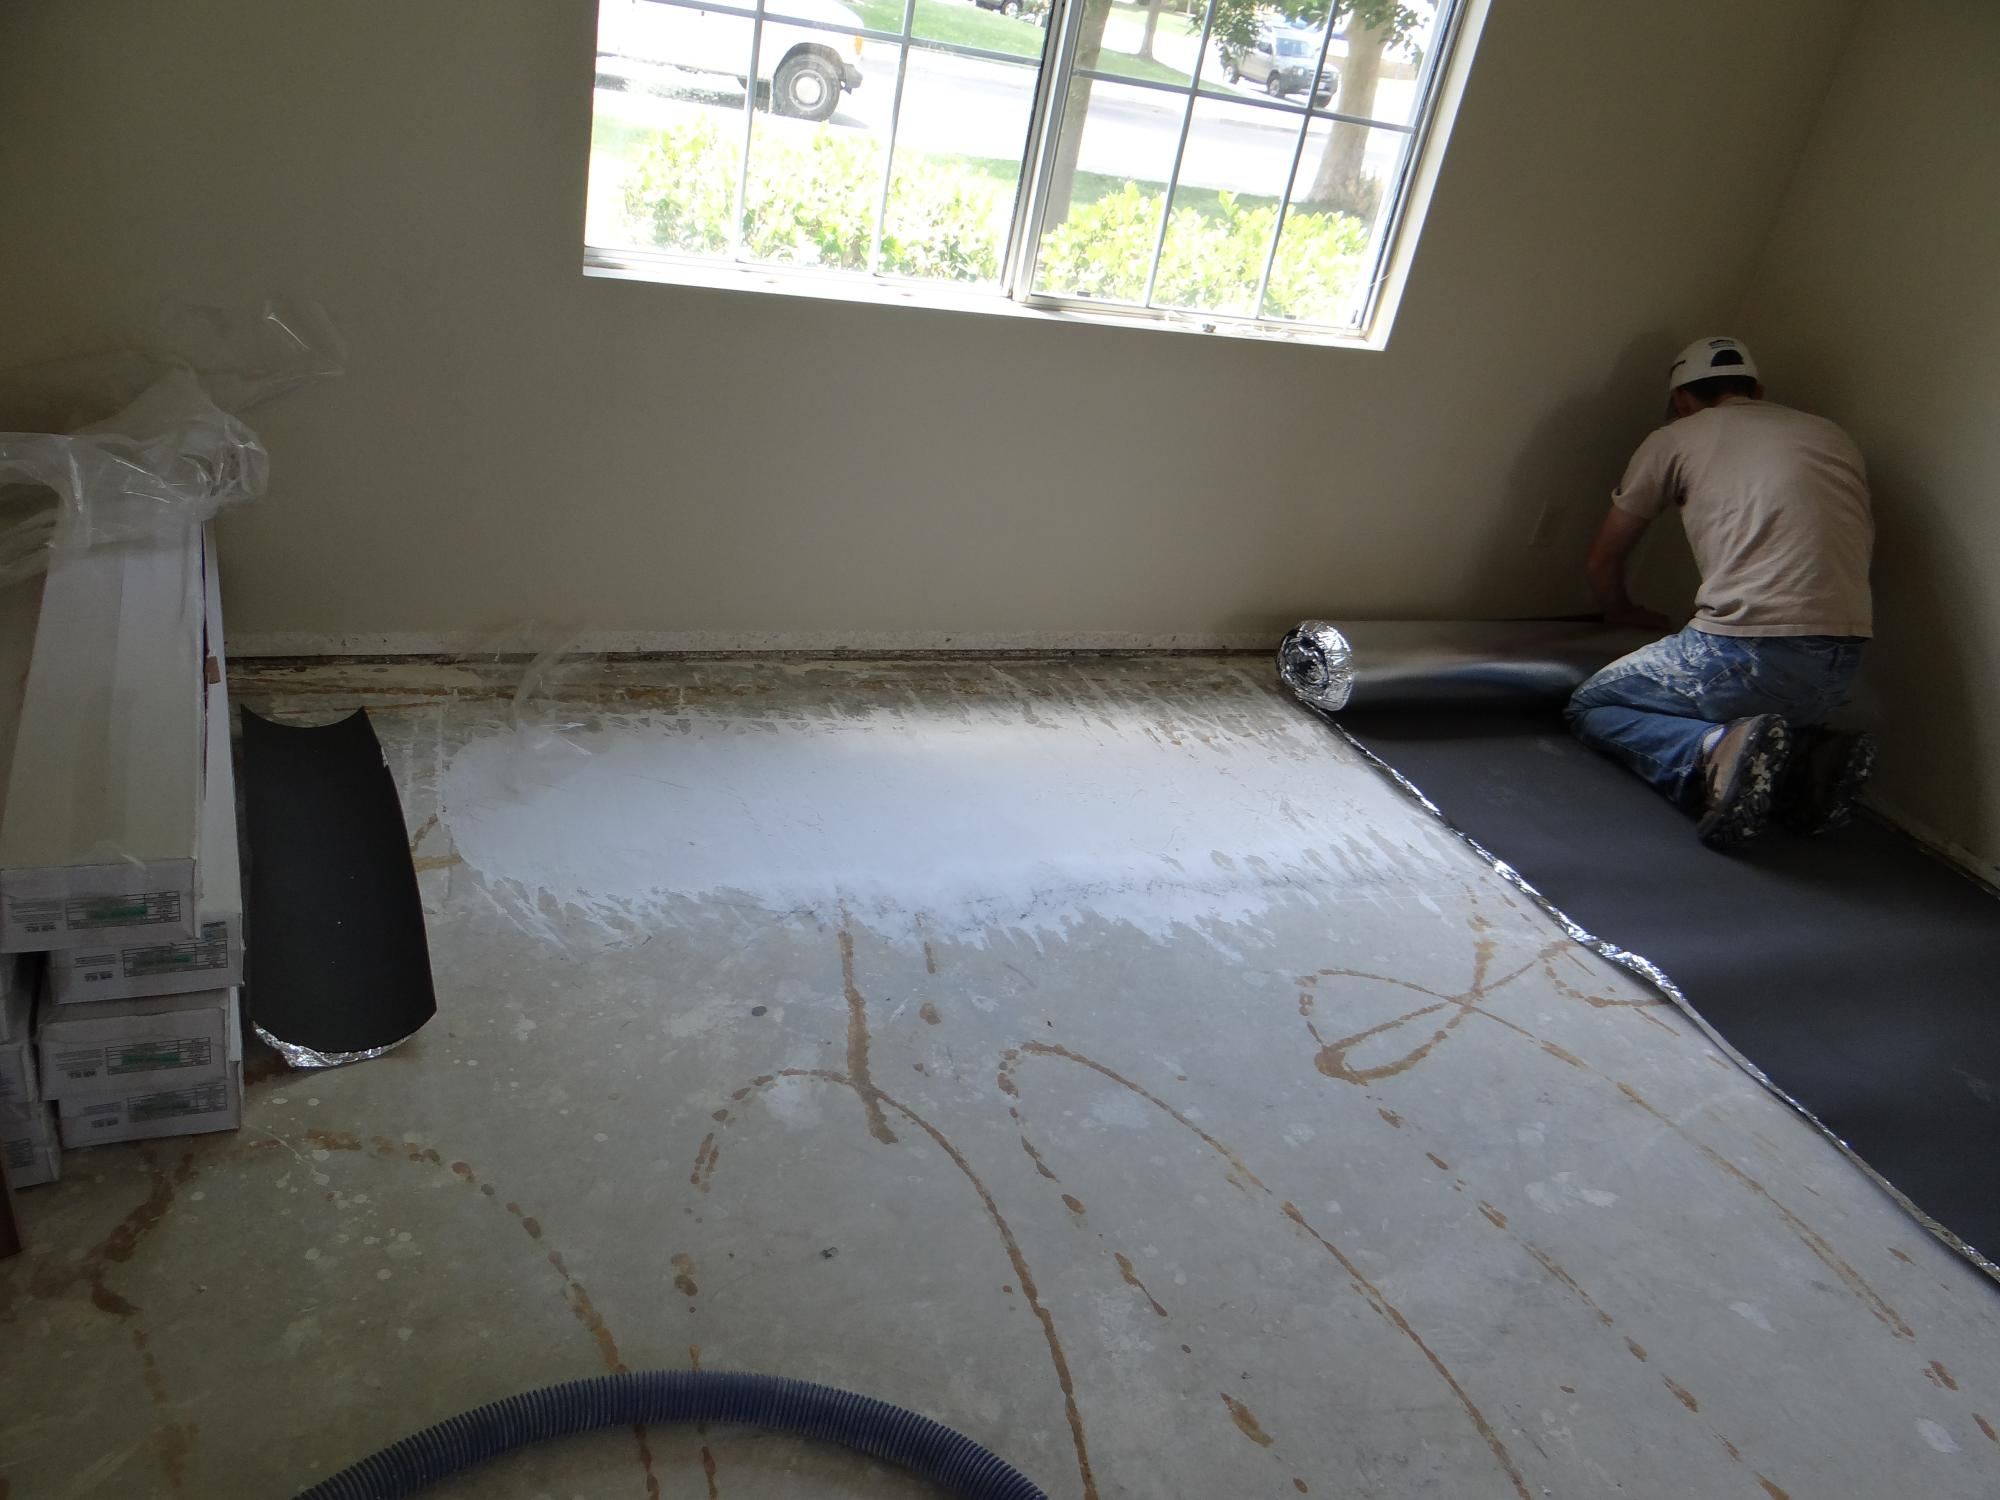 Installing Laminate Flooring Carpet Installation Lancaster Ca - Average cost to lay tile per square foot